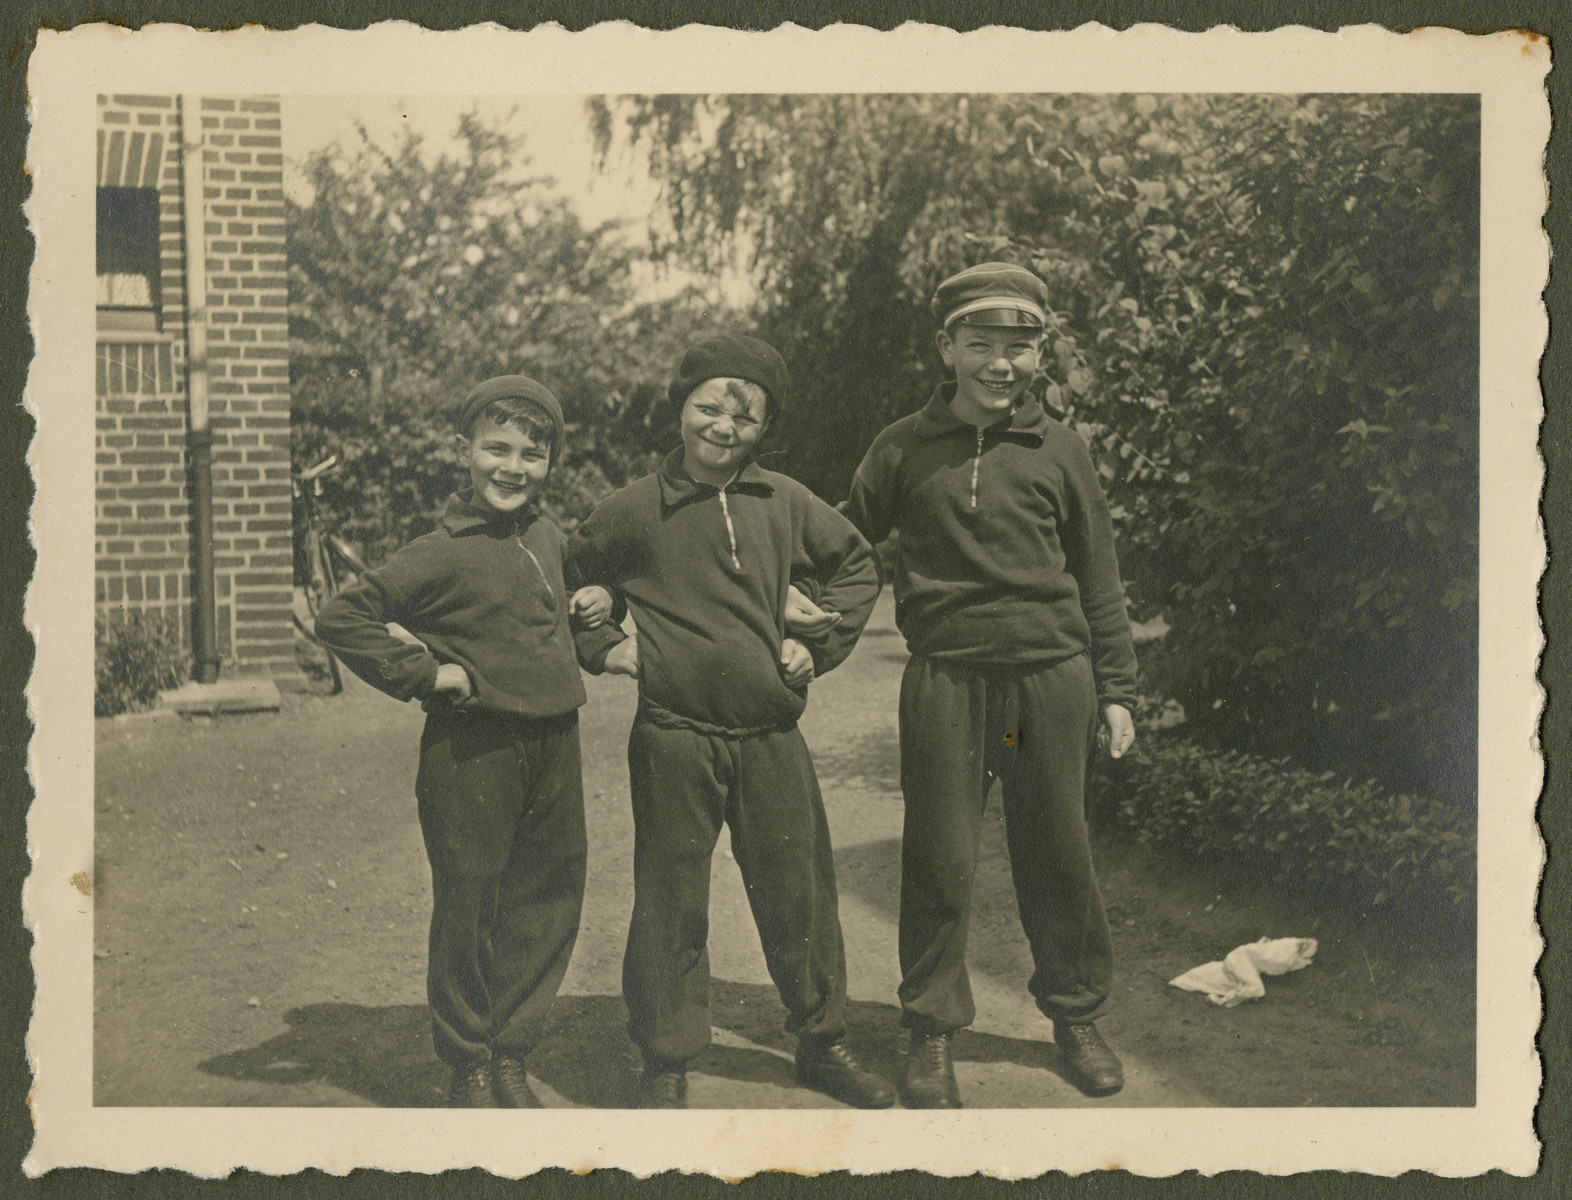 Page from a photo album documenting one day in the life of the Gans brothers, Carl, Manfred and Theo.  Ready for sports.  The boys belonged to a Catholic Sports Club.